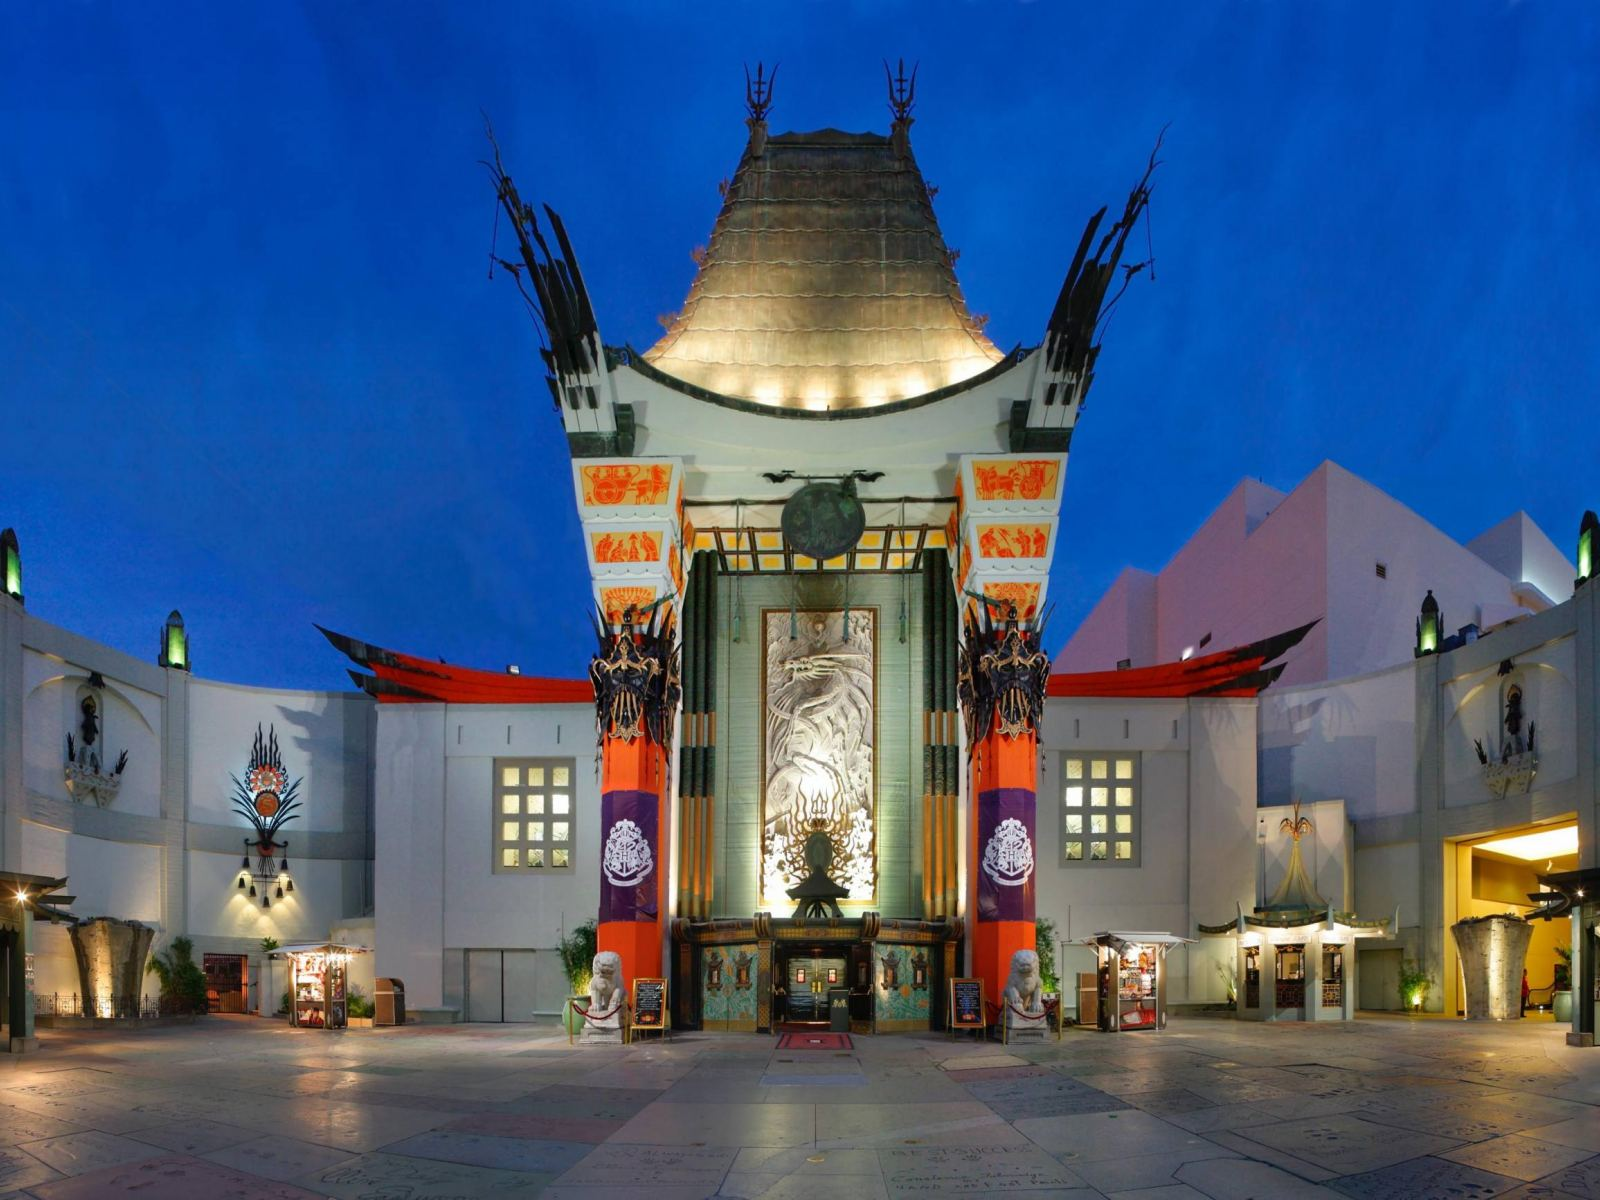 TCL Chinese Theatre IMAX in Hollywood